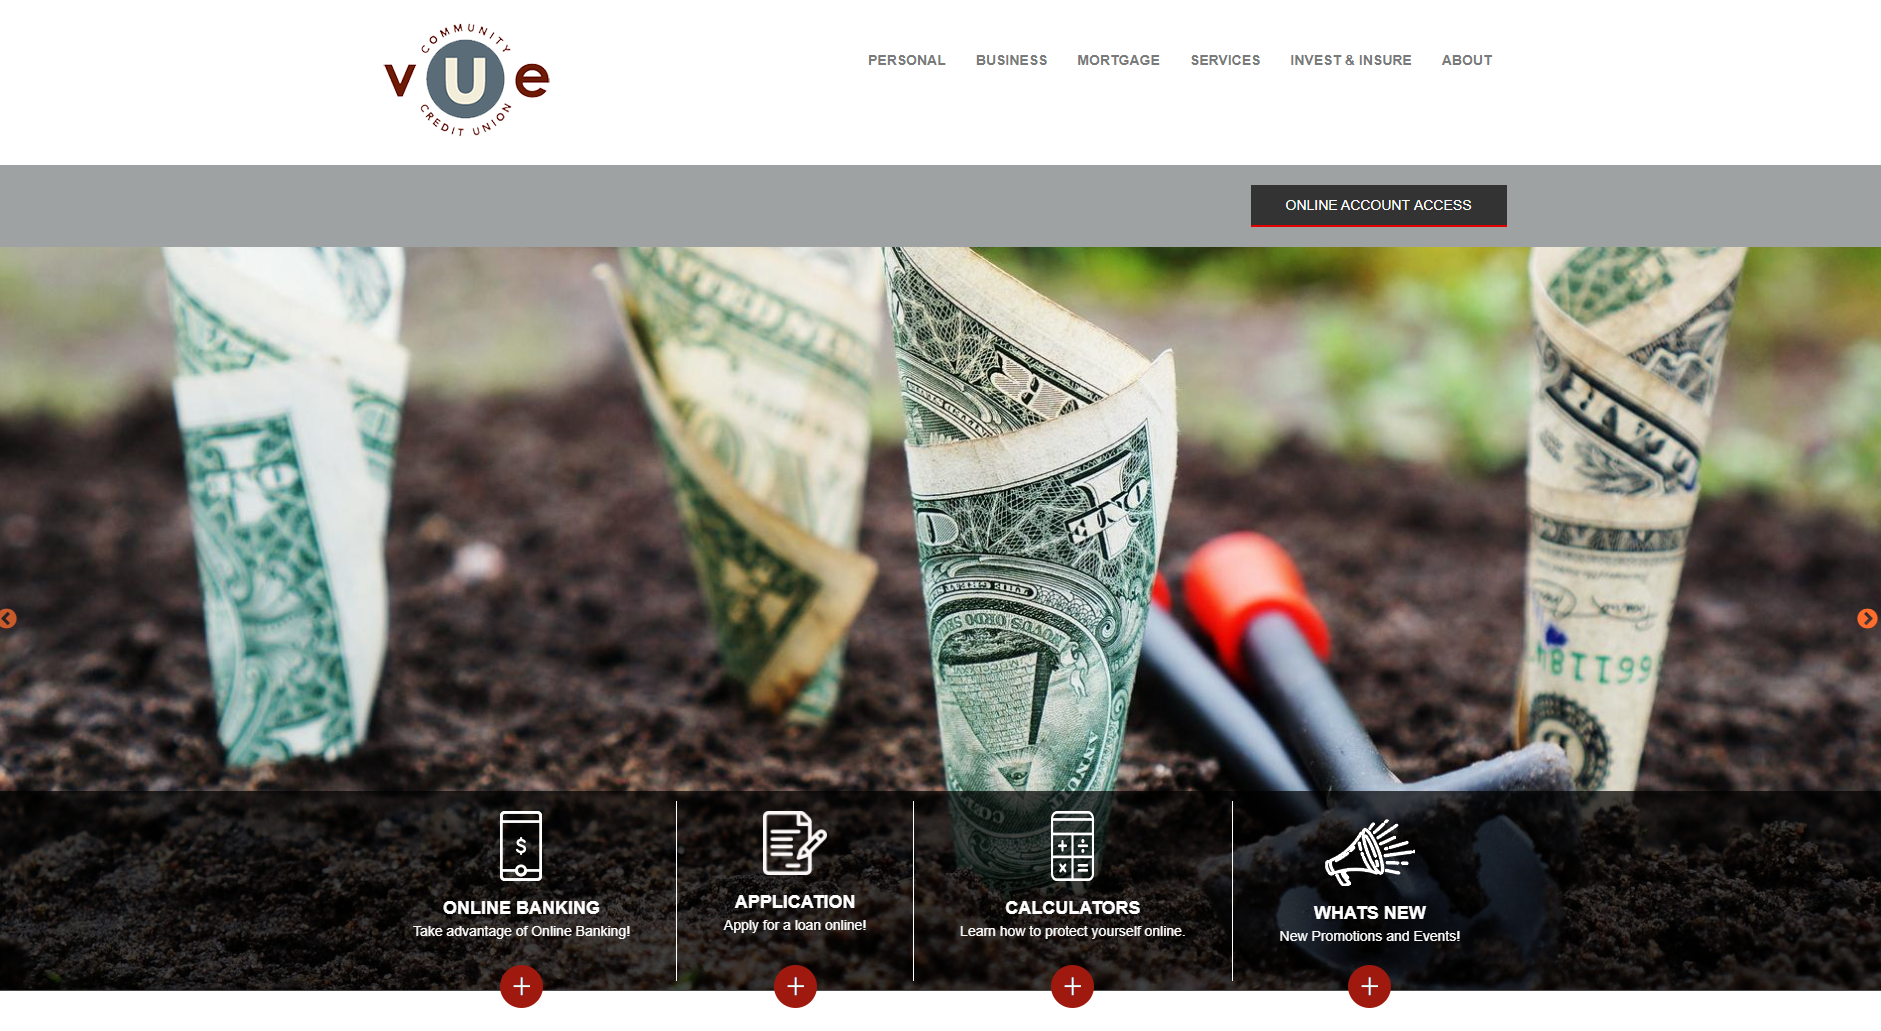 vue community credit union website homepage